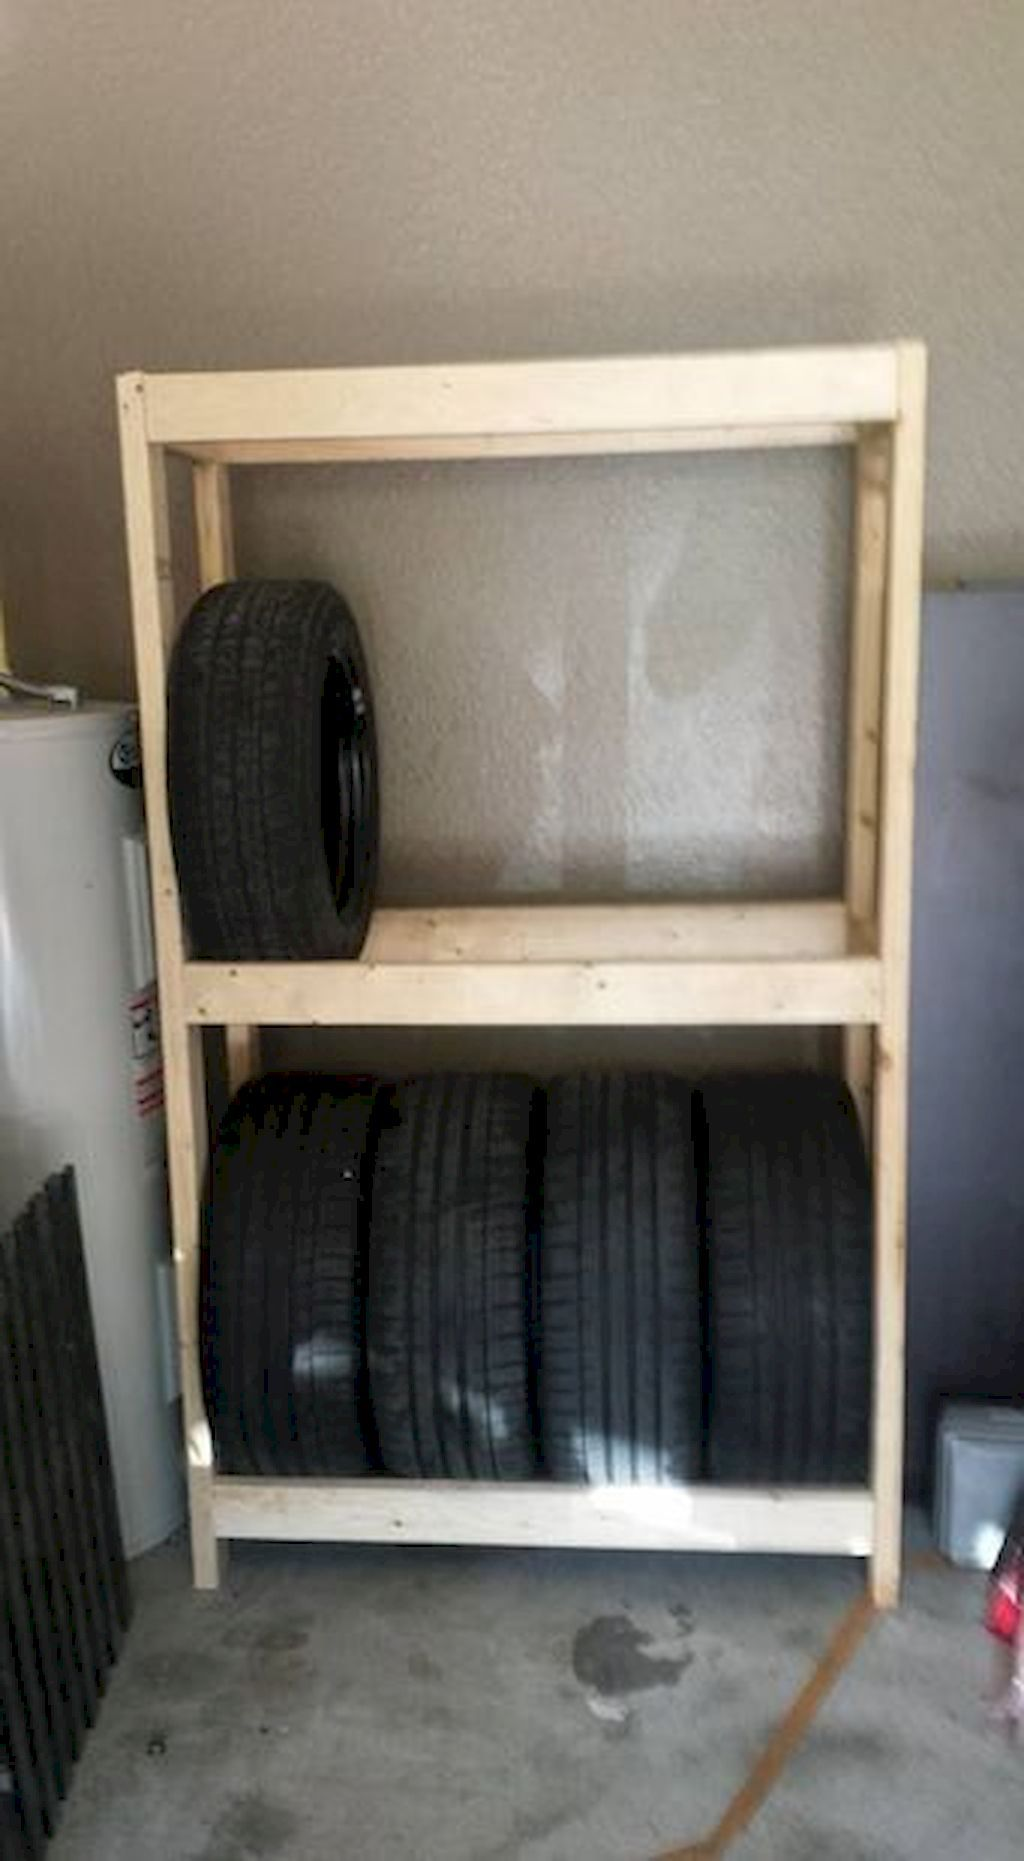 50 Brilliant Garage Storage Organization Ideas #garageideas